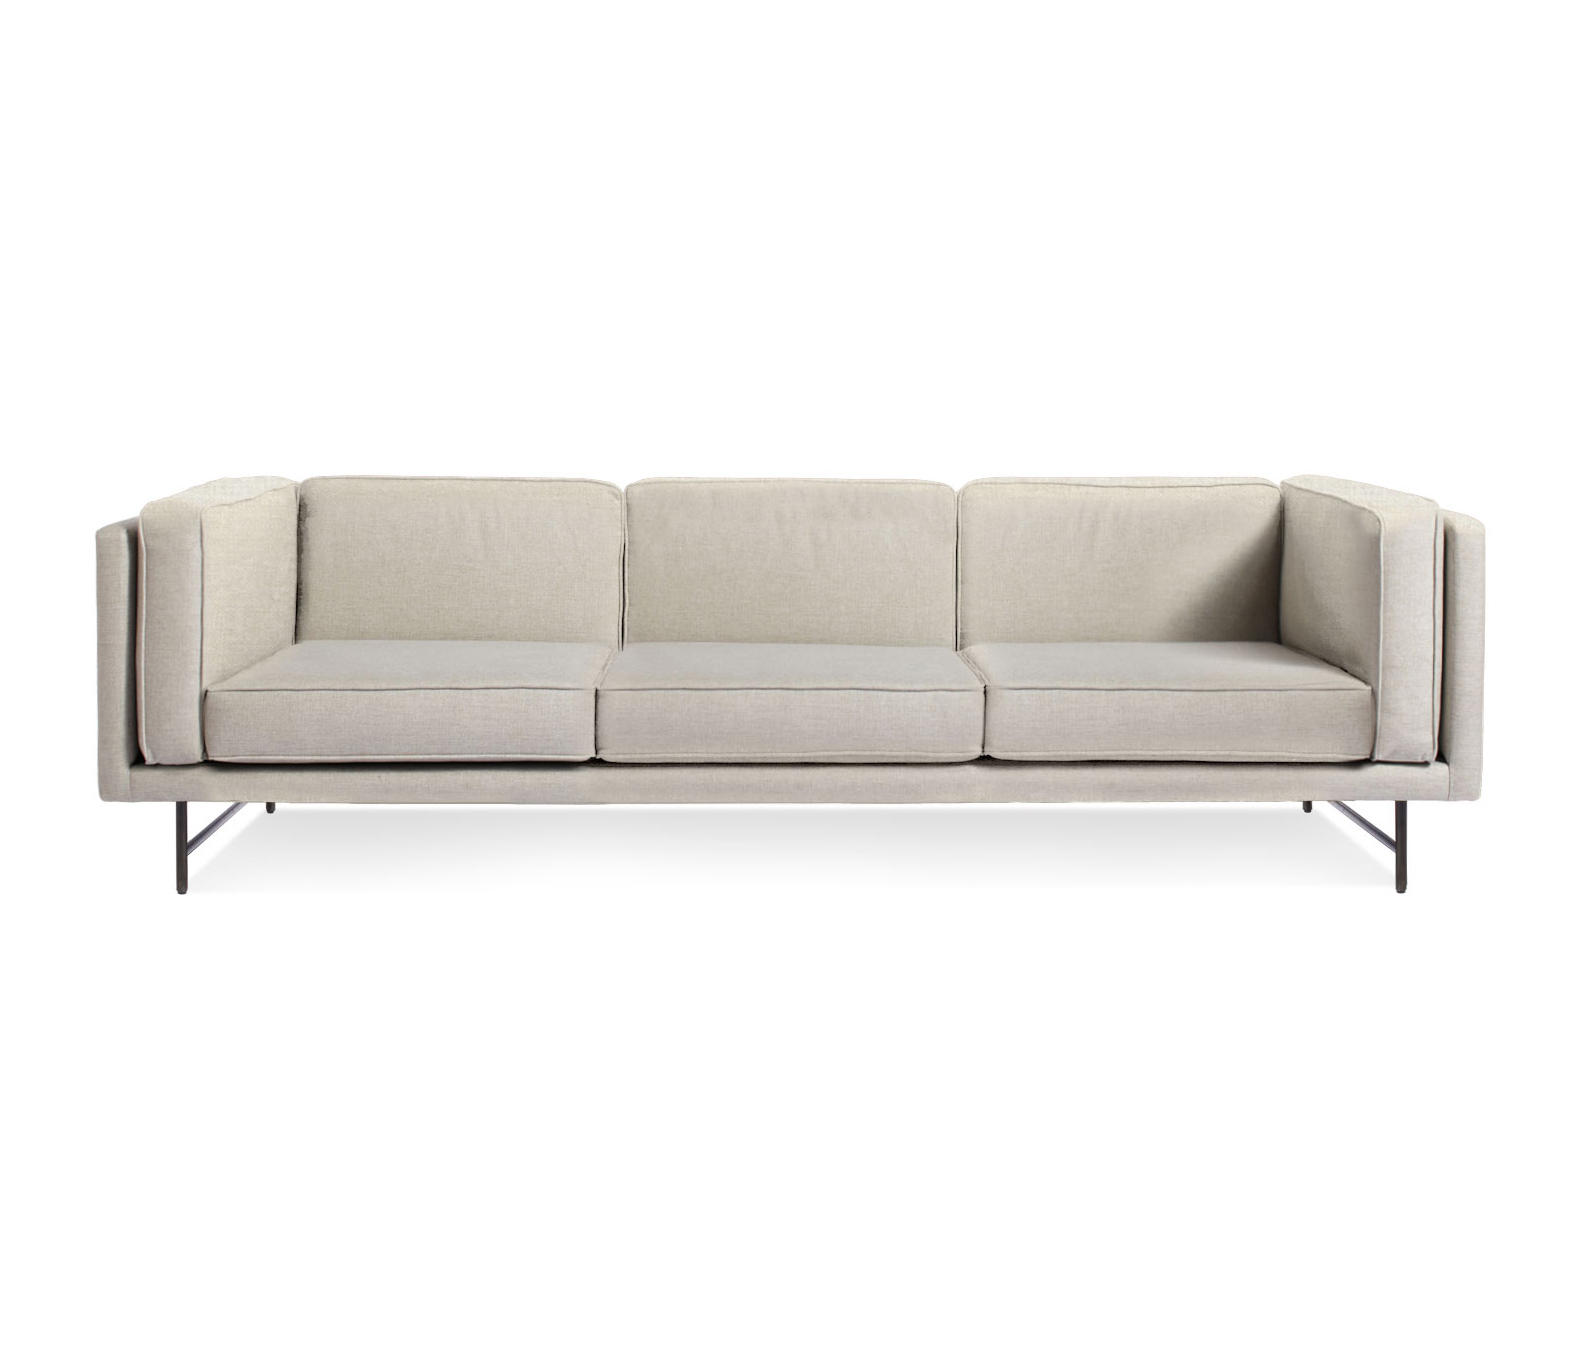 blu dot bank sofa sofas and armchairs house fraser 96 lounge from architonic